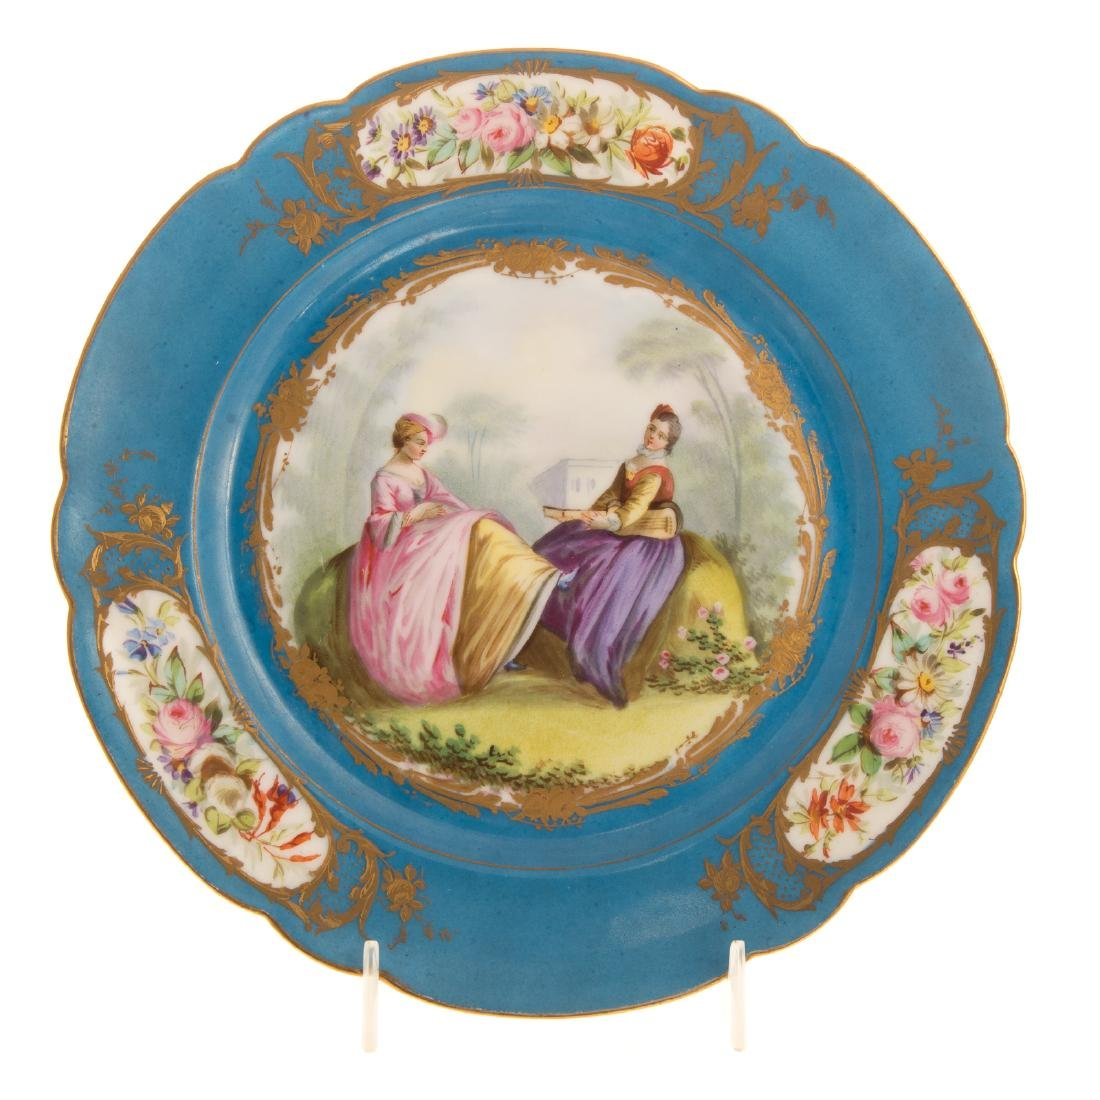 12 Sevres porcelain plates and charger - 2